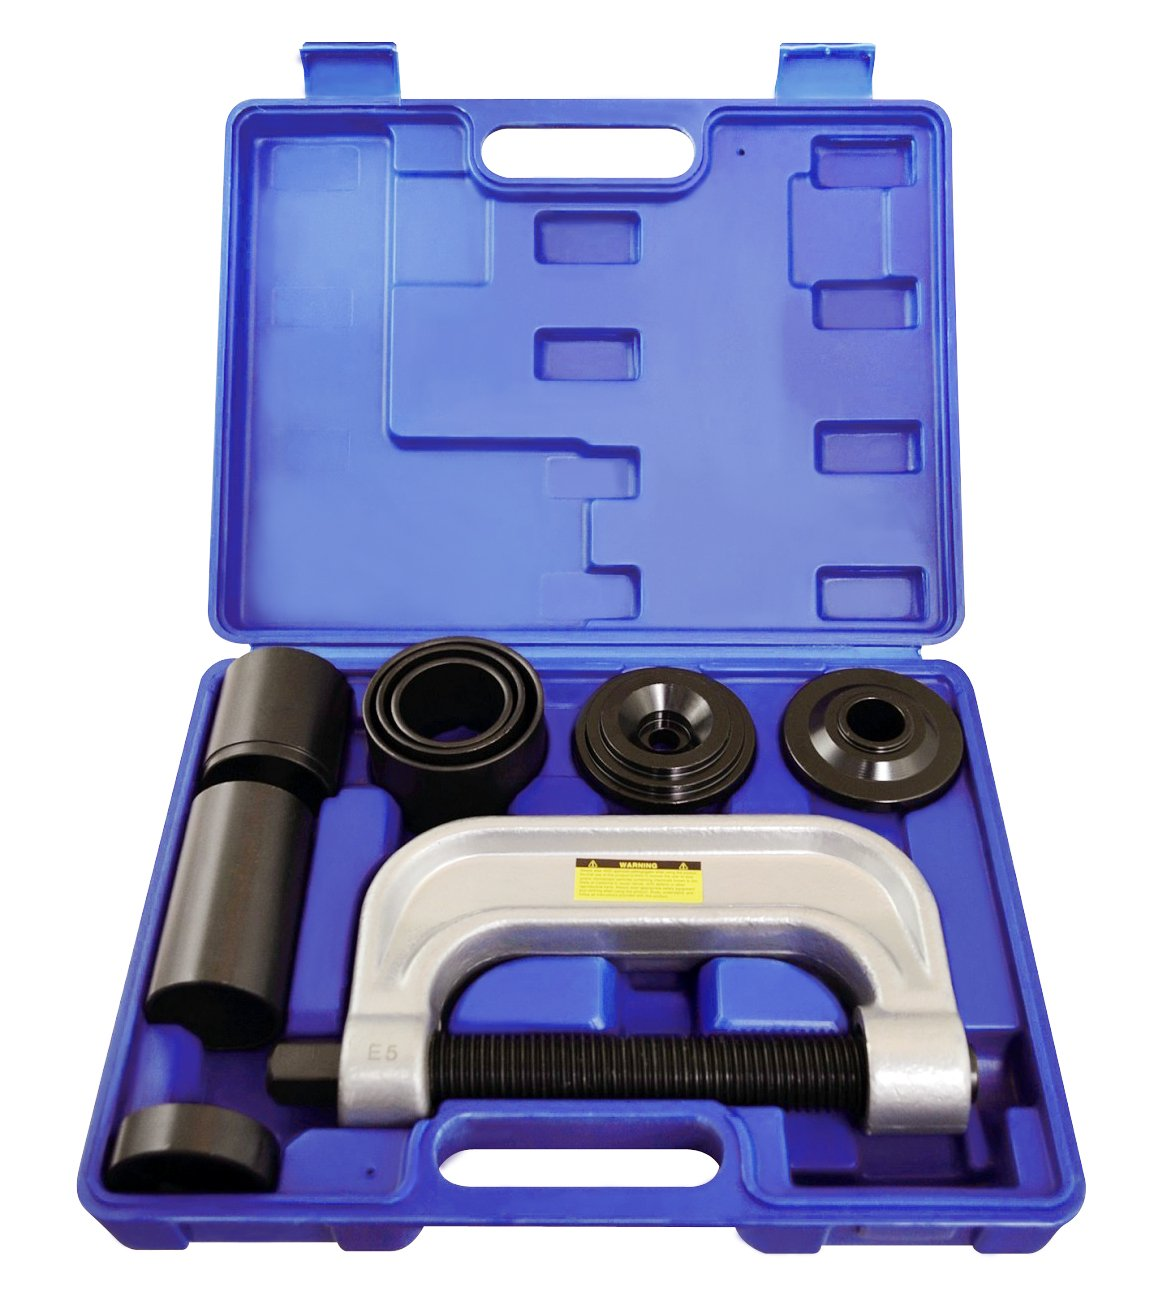 Astro 7865 Ball Joint Service Tool with 4-wheel Drive Adapters Astro Pneumatic Tool